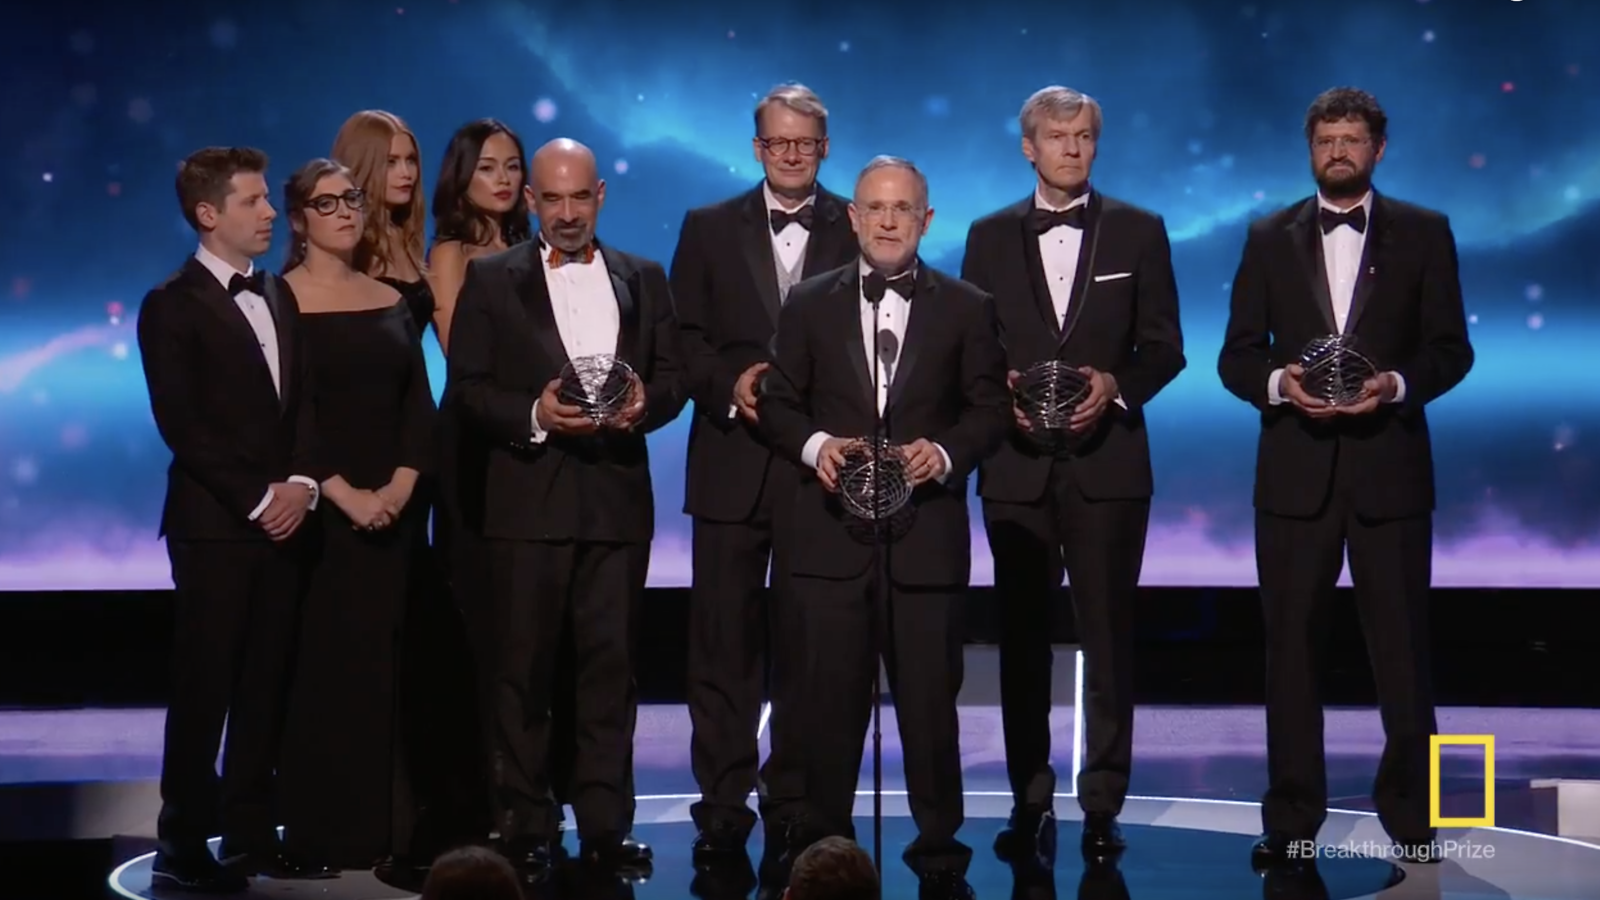 Photo of winners of the Breakthrough Prize accept awards onstage